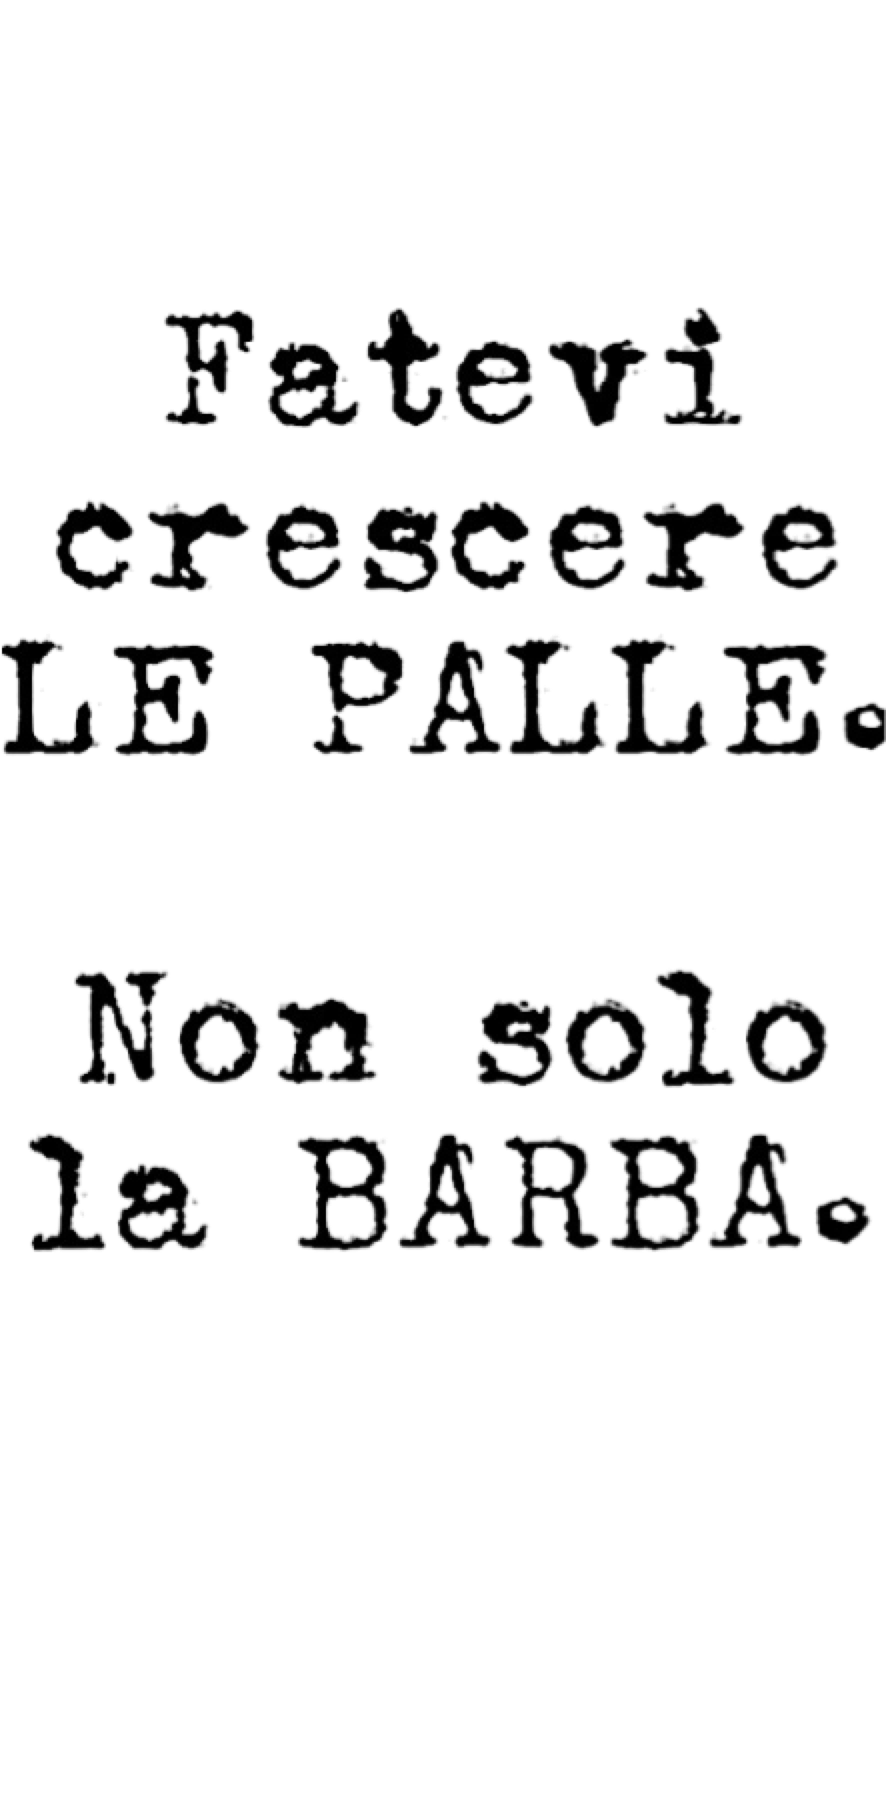 cover #PALLE